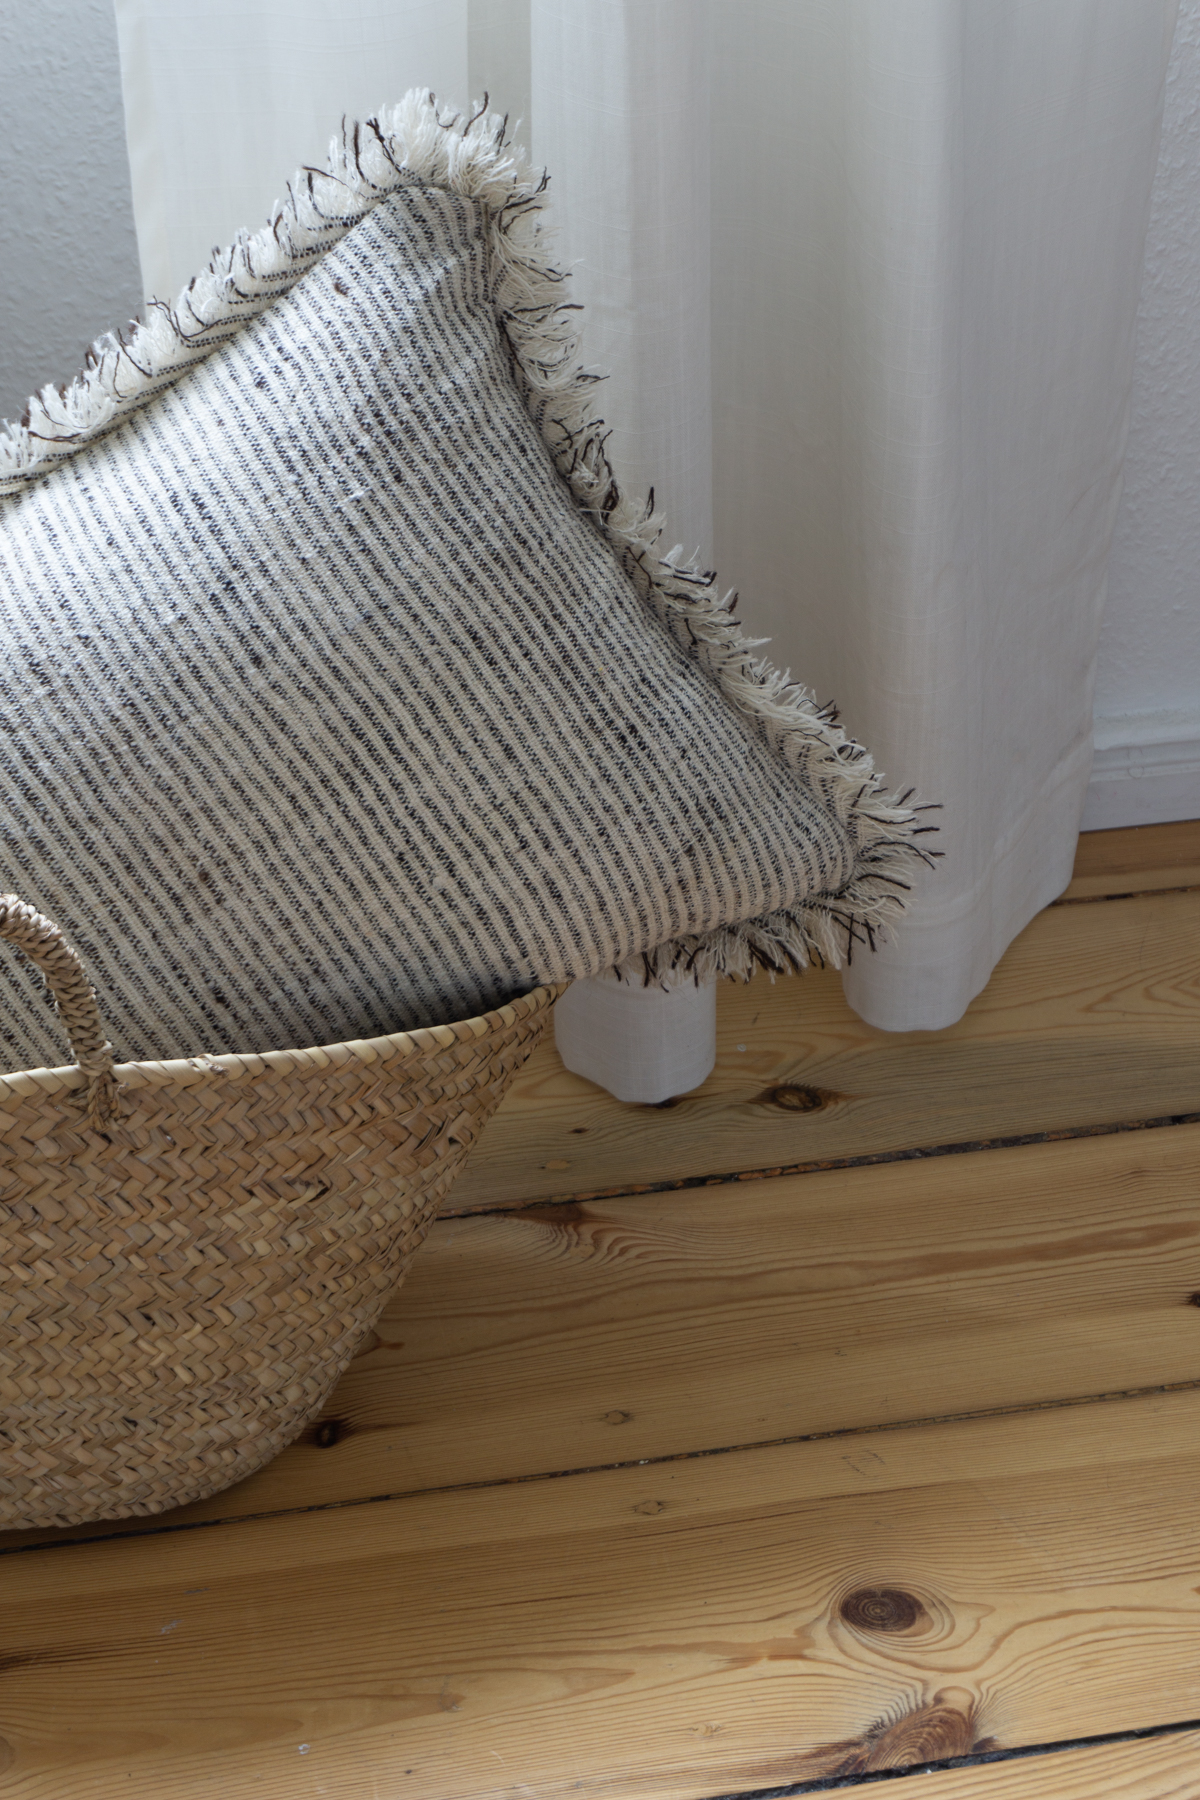 stitch-by-stitch-sustainable-ethical-organic-bedding-textiles-interior-design-bedroom-rg-daily-blog-22.jpg